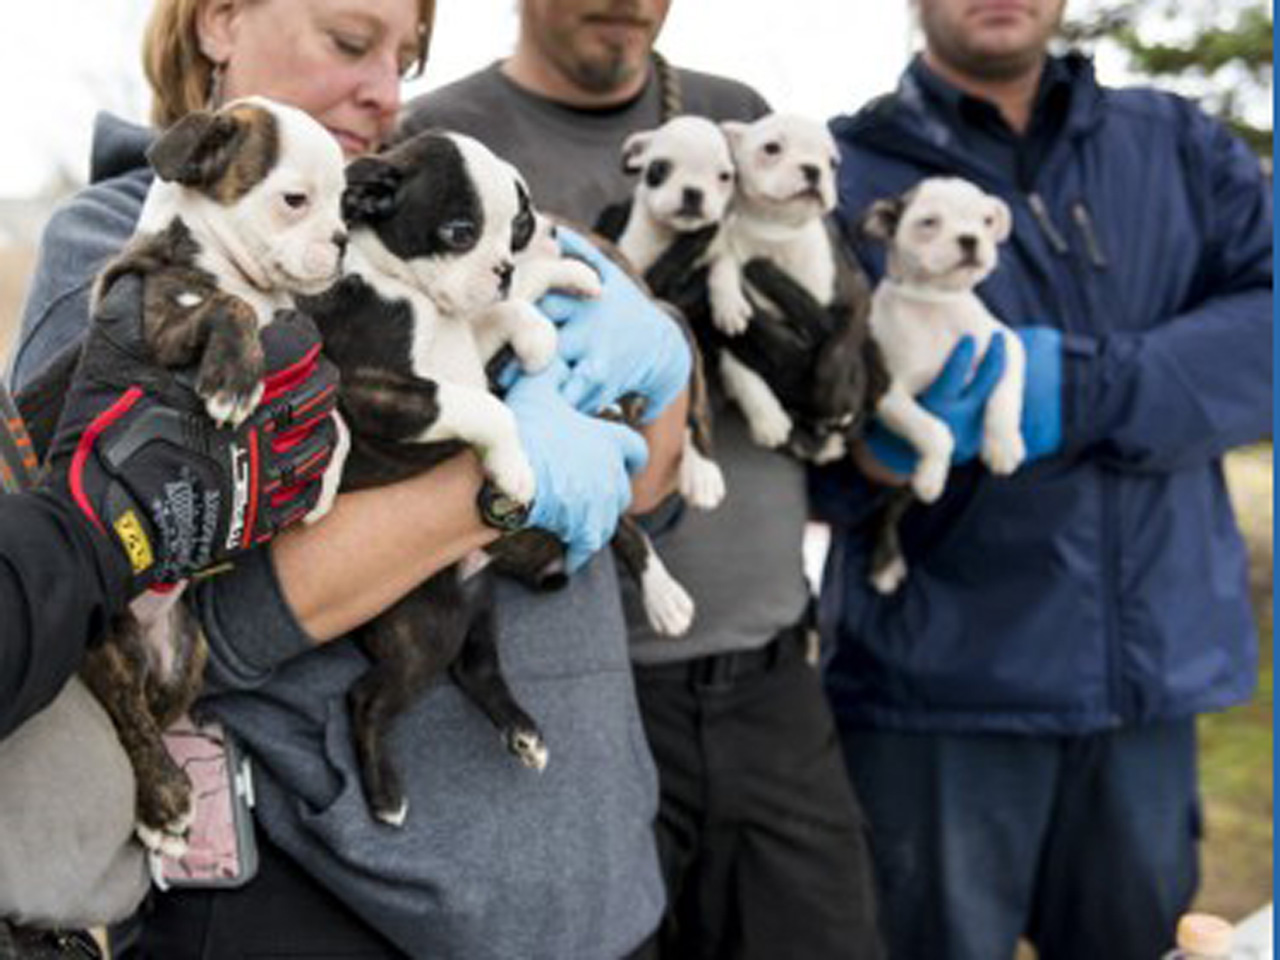 More than 50 dogs rescued in Michigan puppy mill raid - CBS News